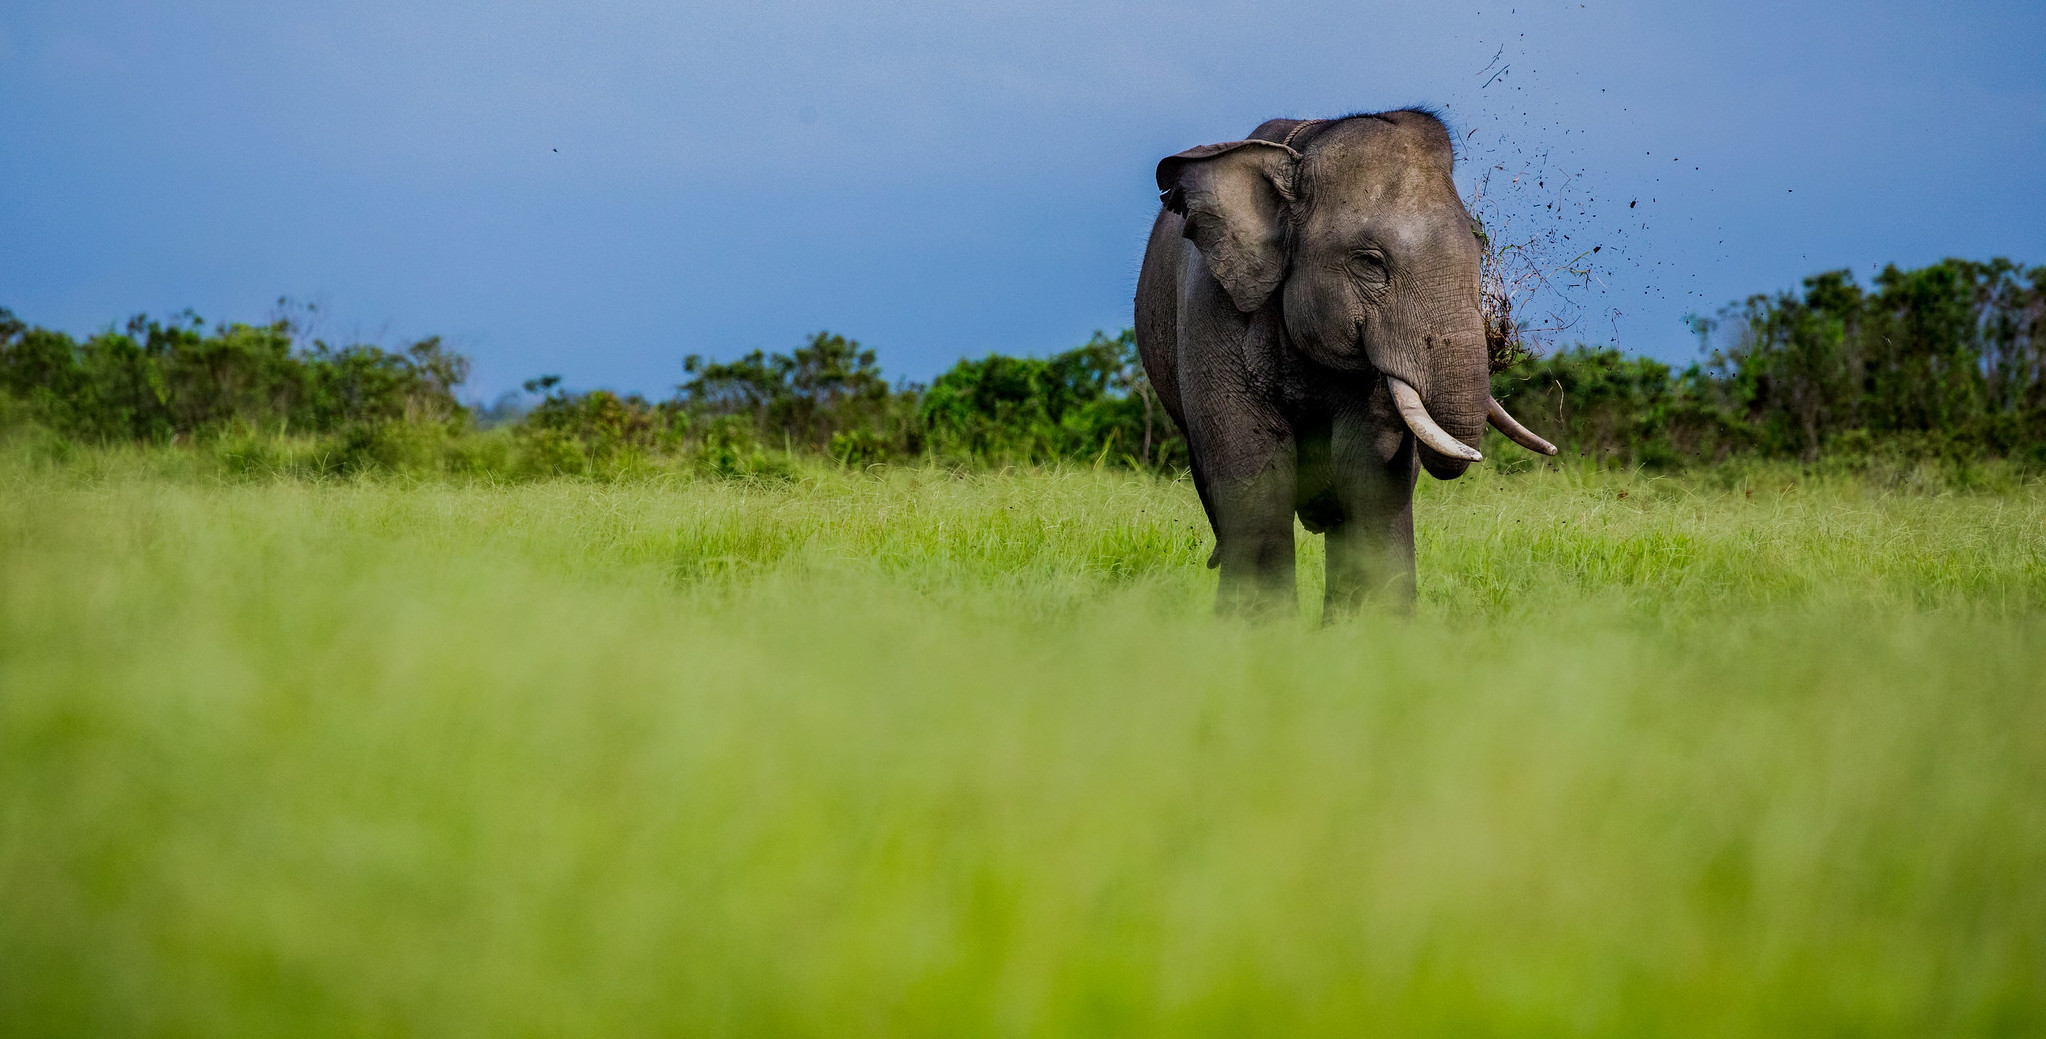 EARTH DAY: Can Sumatran elephants and people coexist?